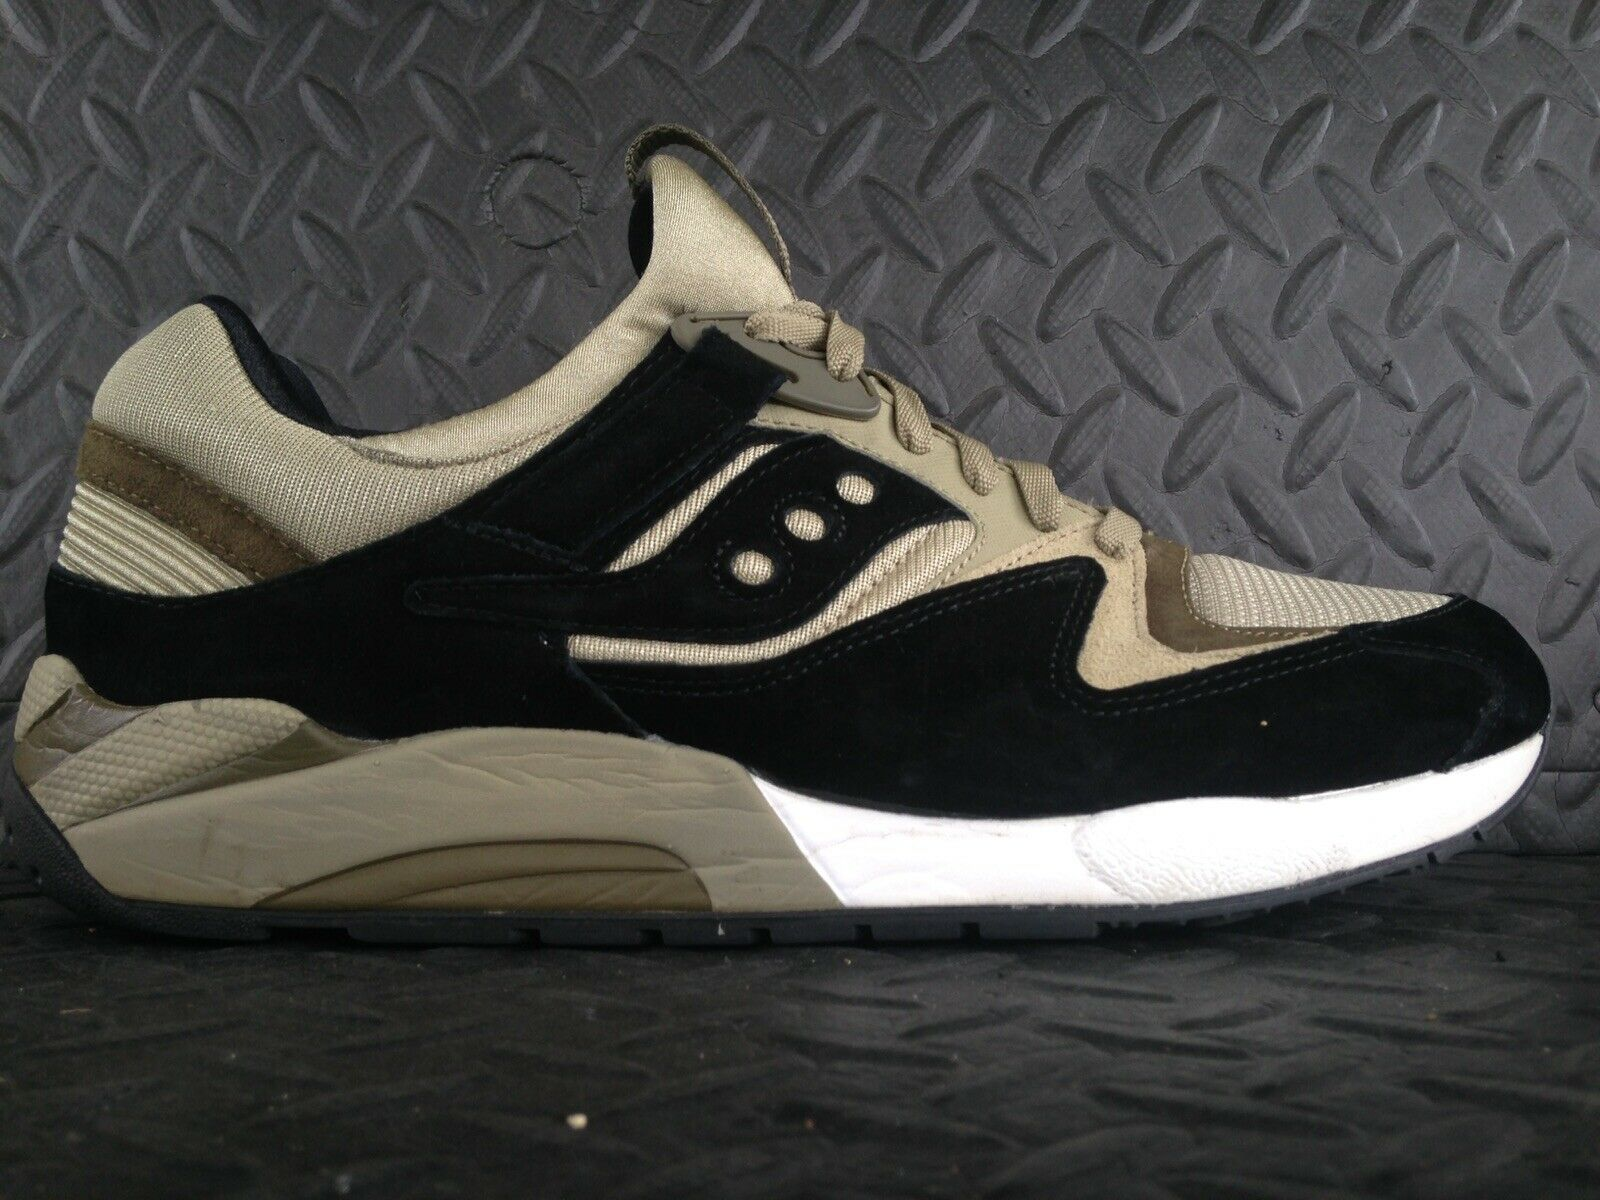 Saucony grid 9000 used size 11.5 s70134-8